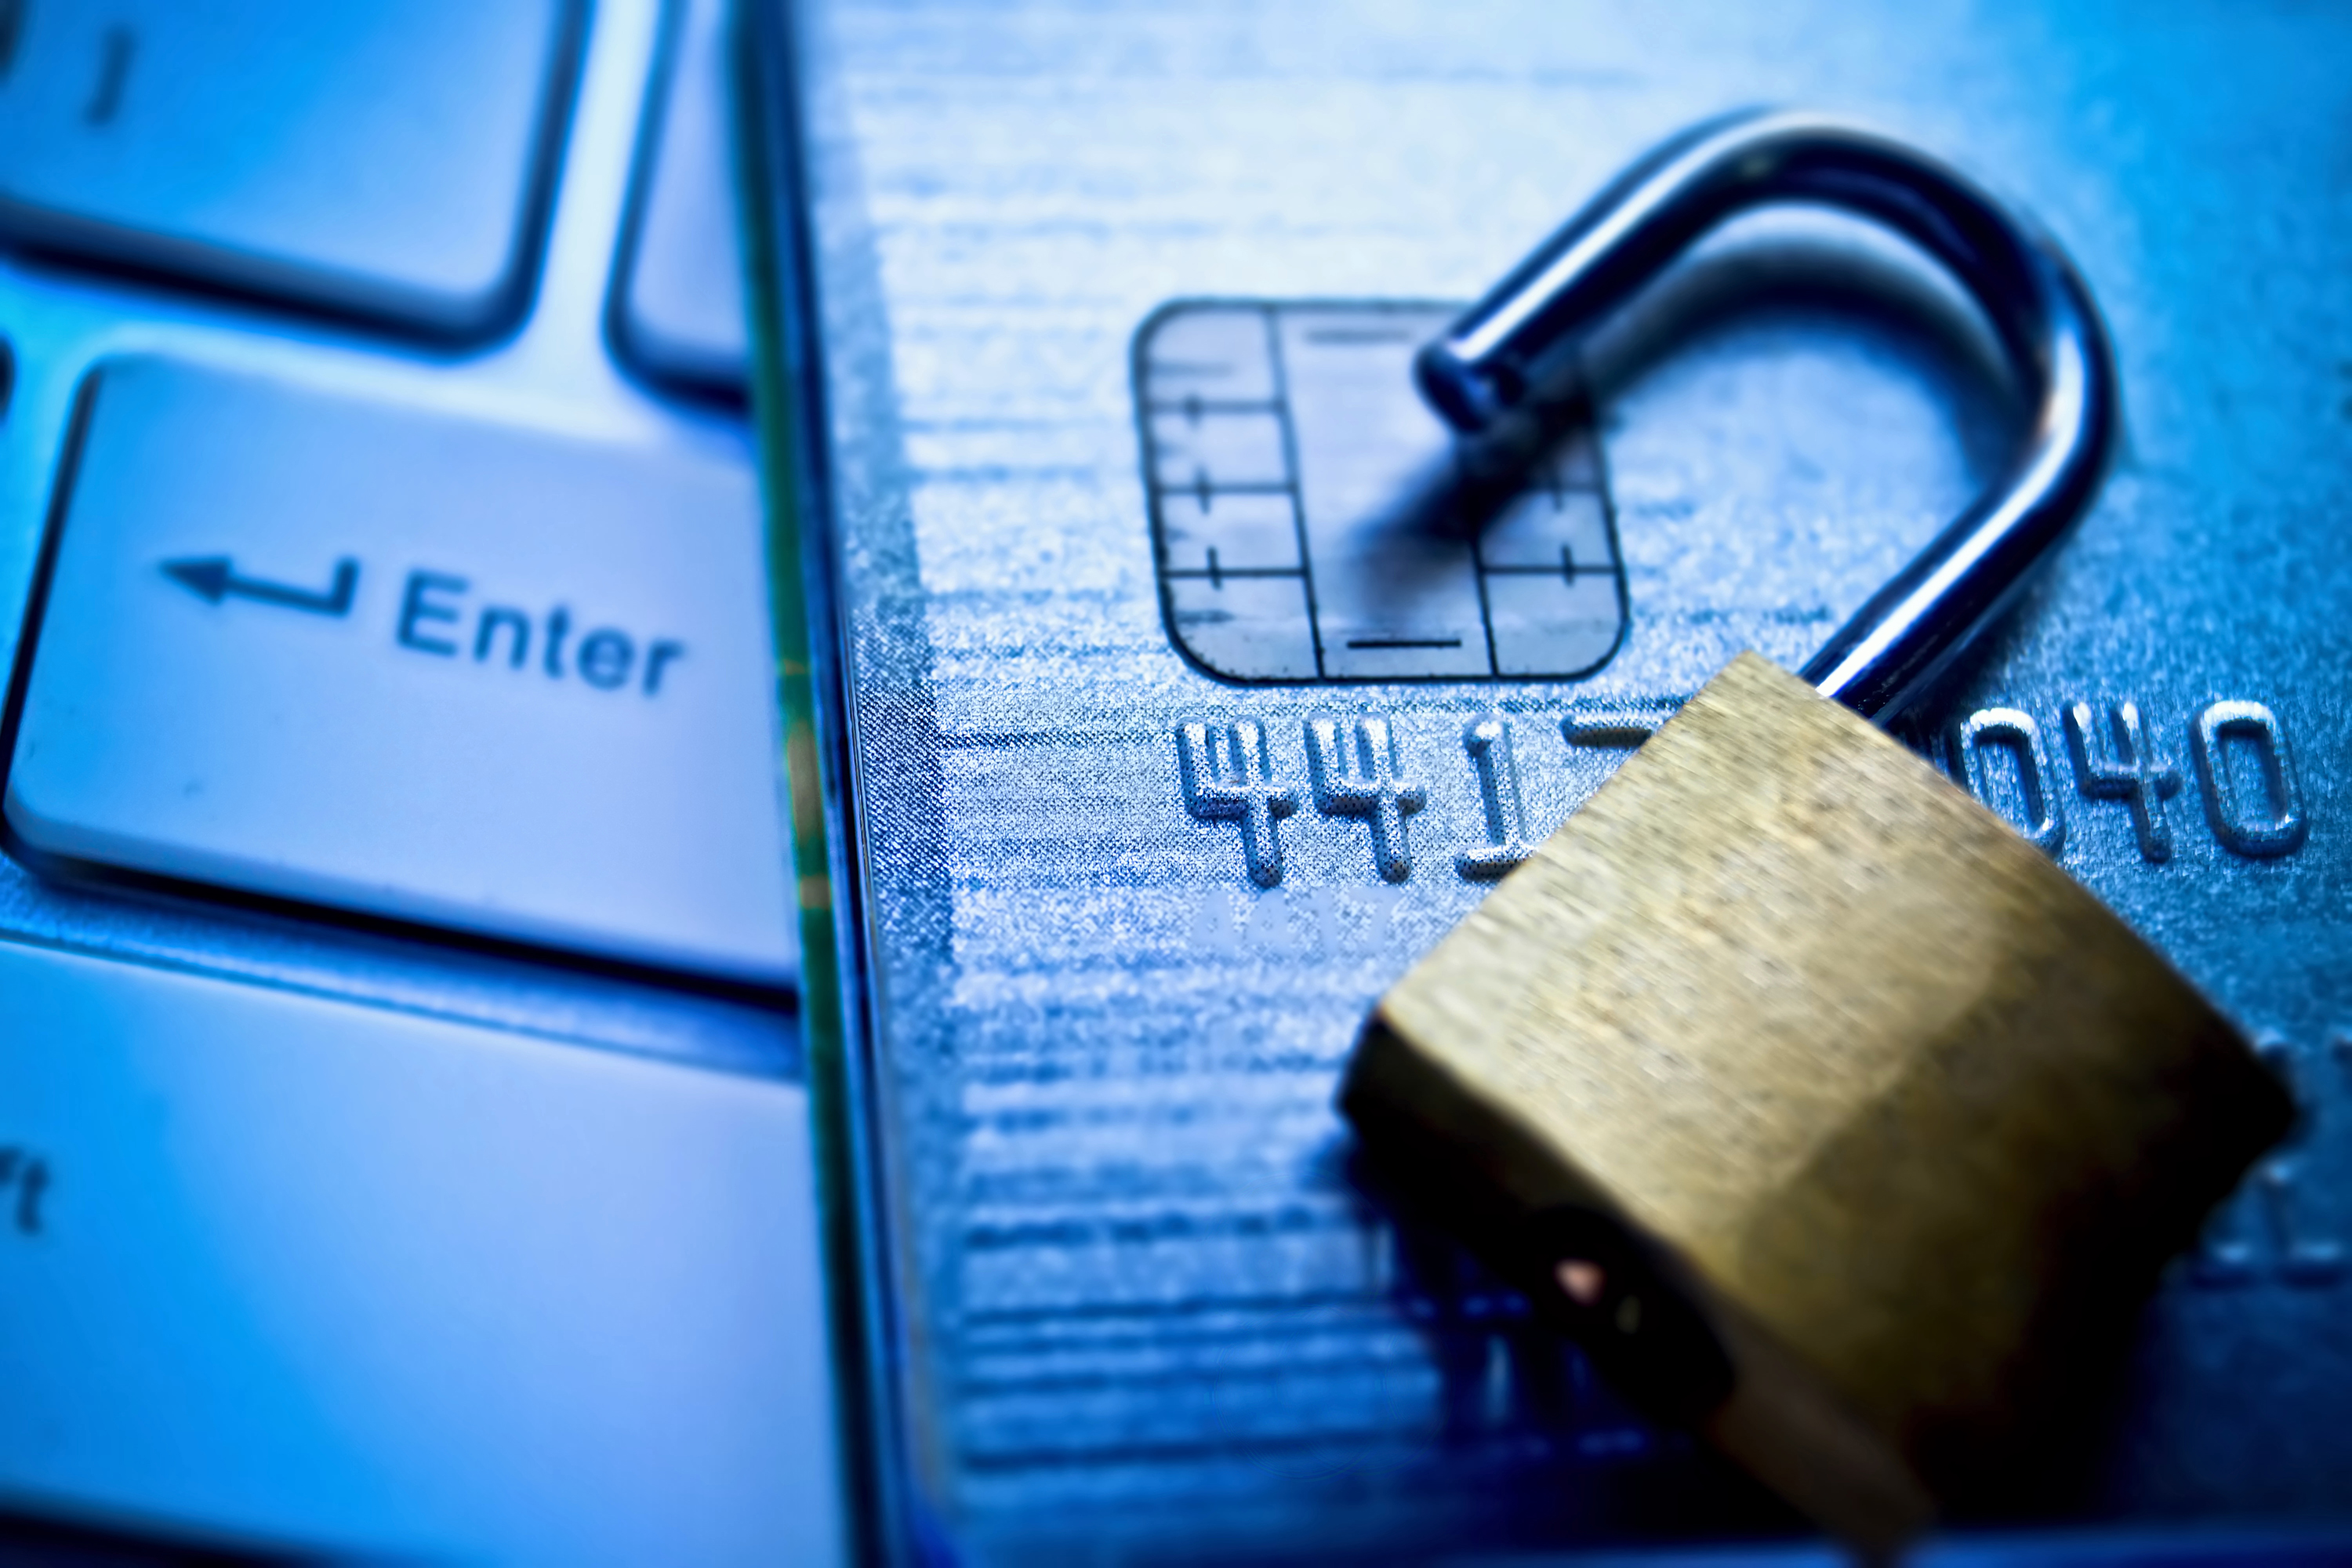 Protect Yourself Against Malware Marine Credit Union